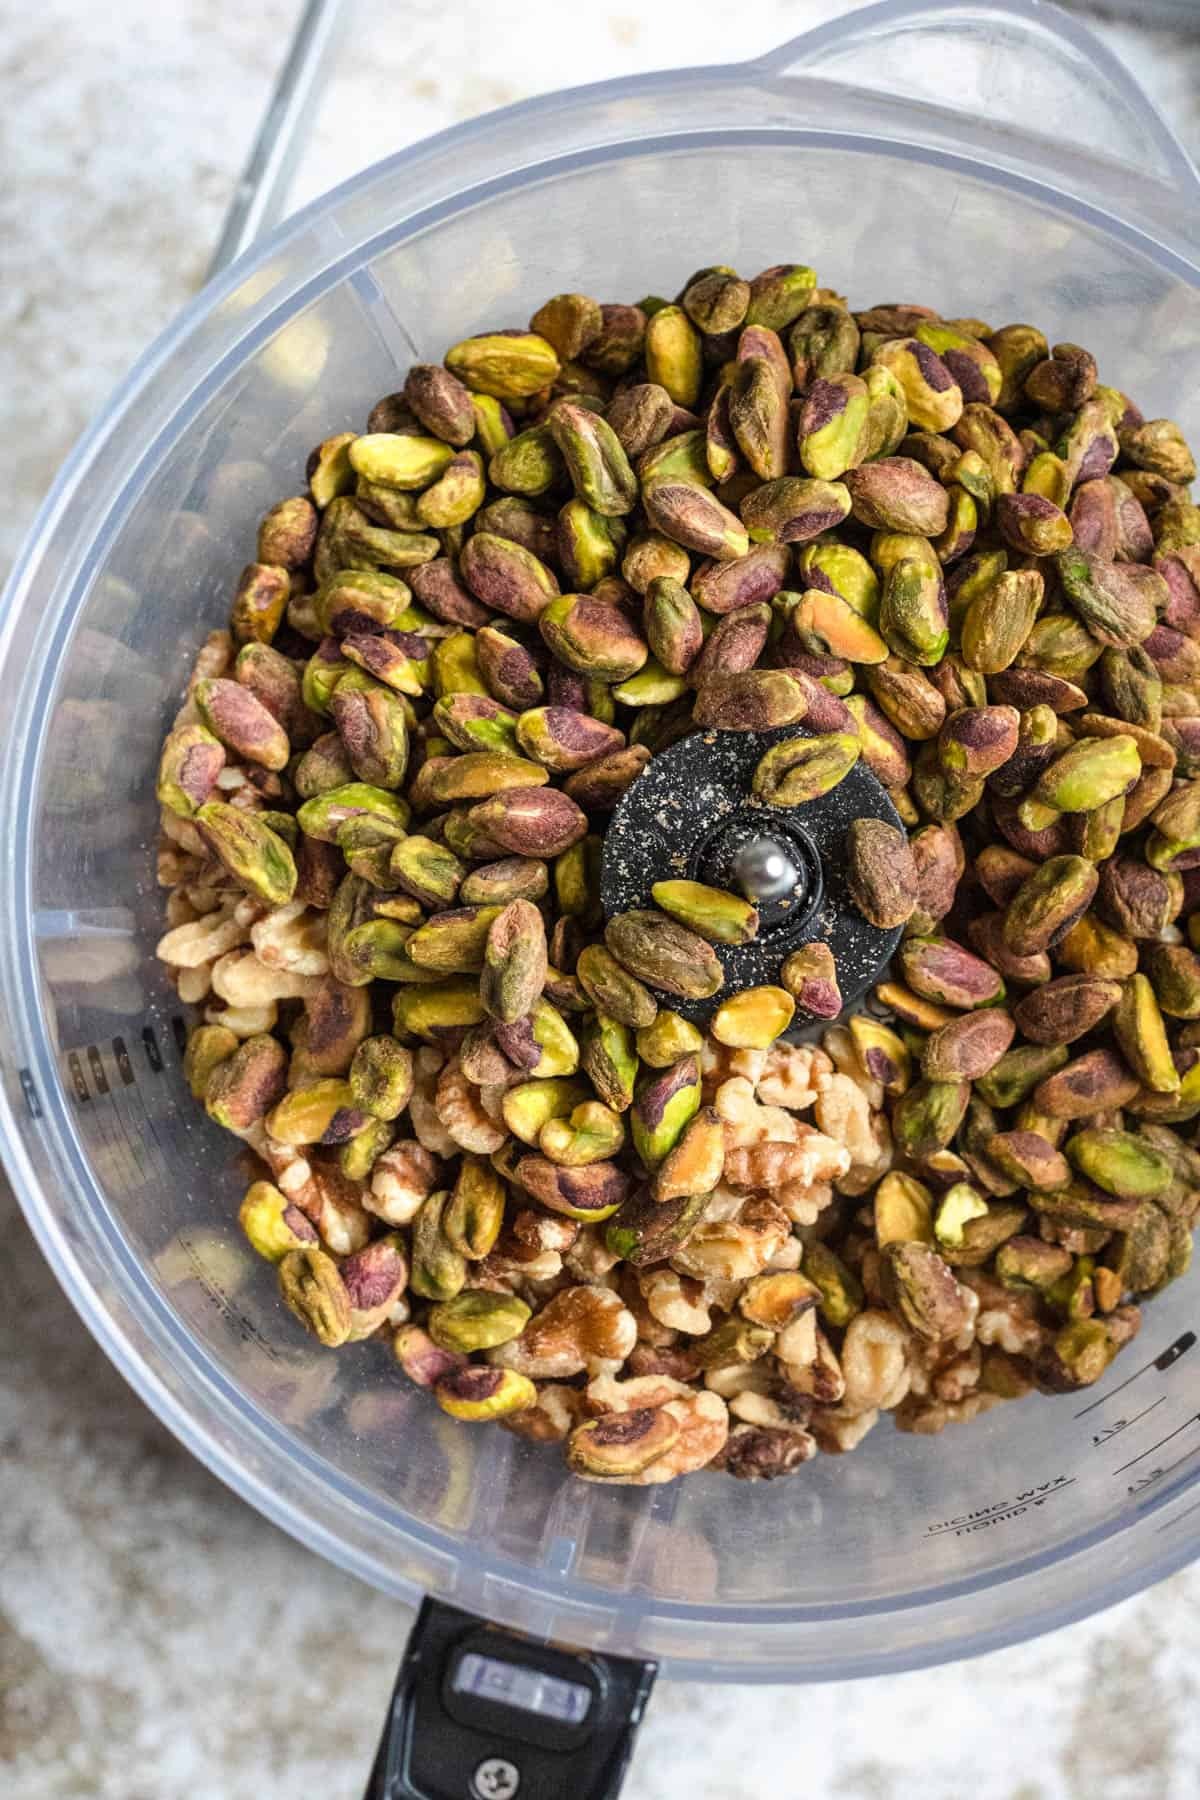 Food processor with pistachios and walnuts